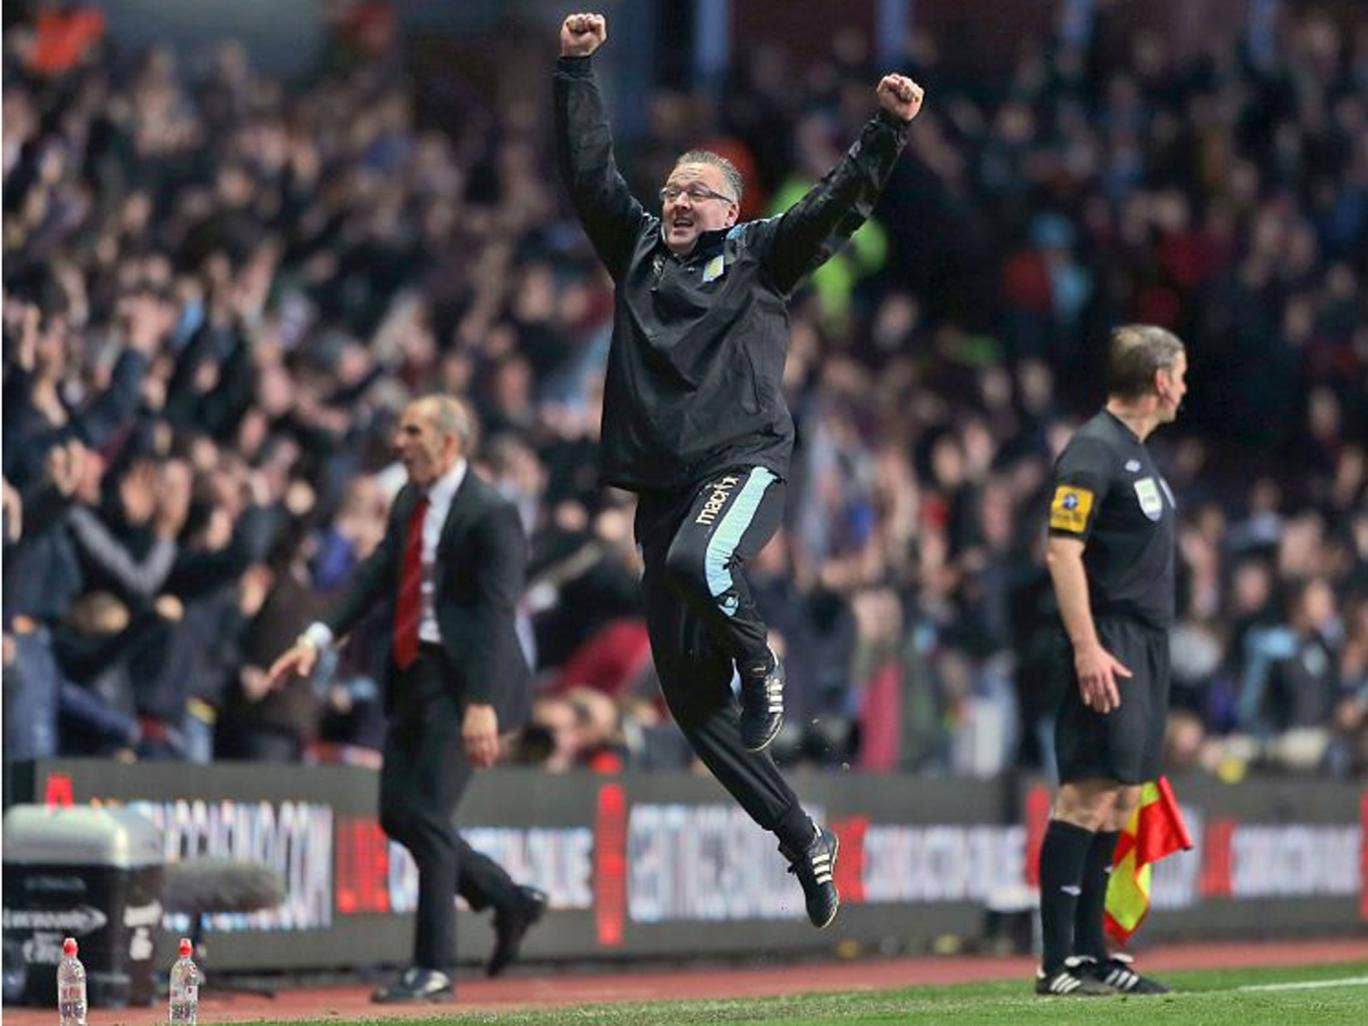 Aston Villa manager Paul Lambert, centre, celebrates on the touchline after Ron Vlaar scores his side's first goal of the game against Sunderland during the English Premier League soccer match at Villa Park, Birmingham